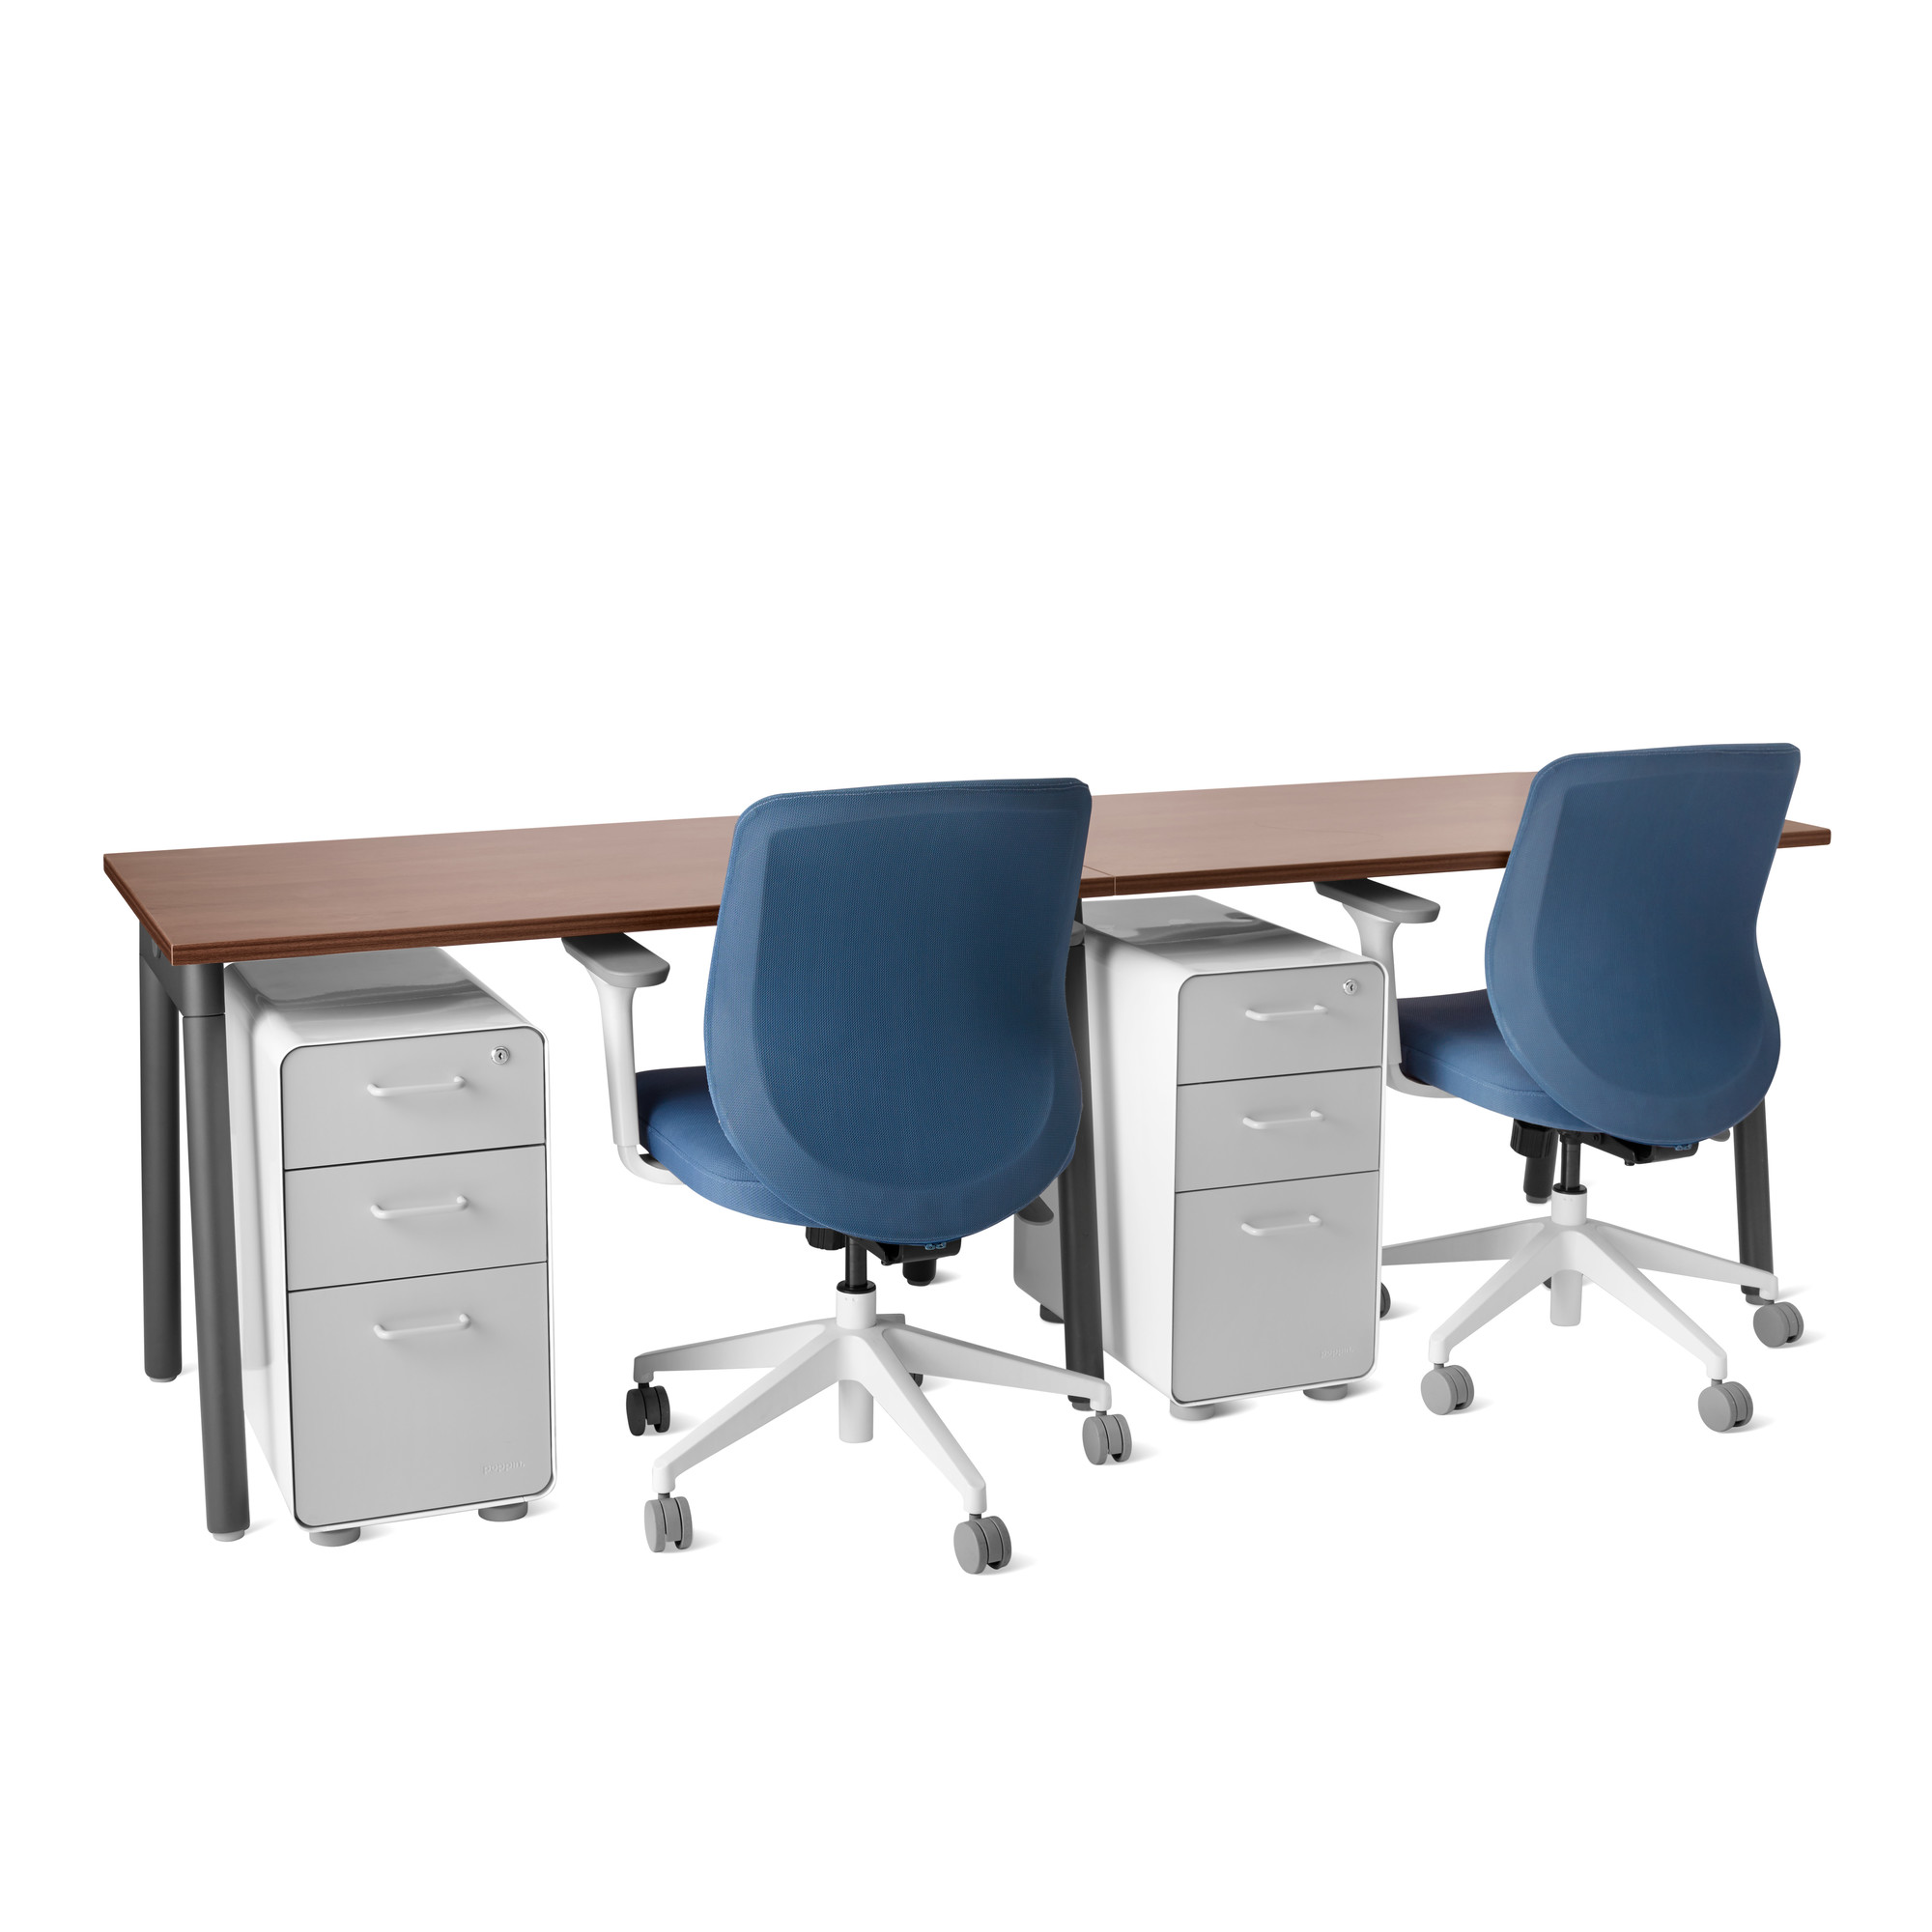 office furniture legs. Series A Single Desk For 2, Walnut, 47\ Office Furniture Legs E